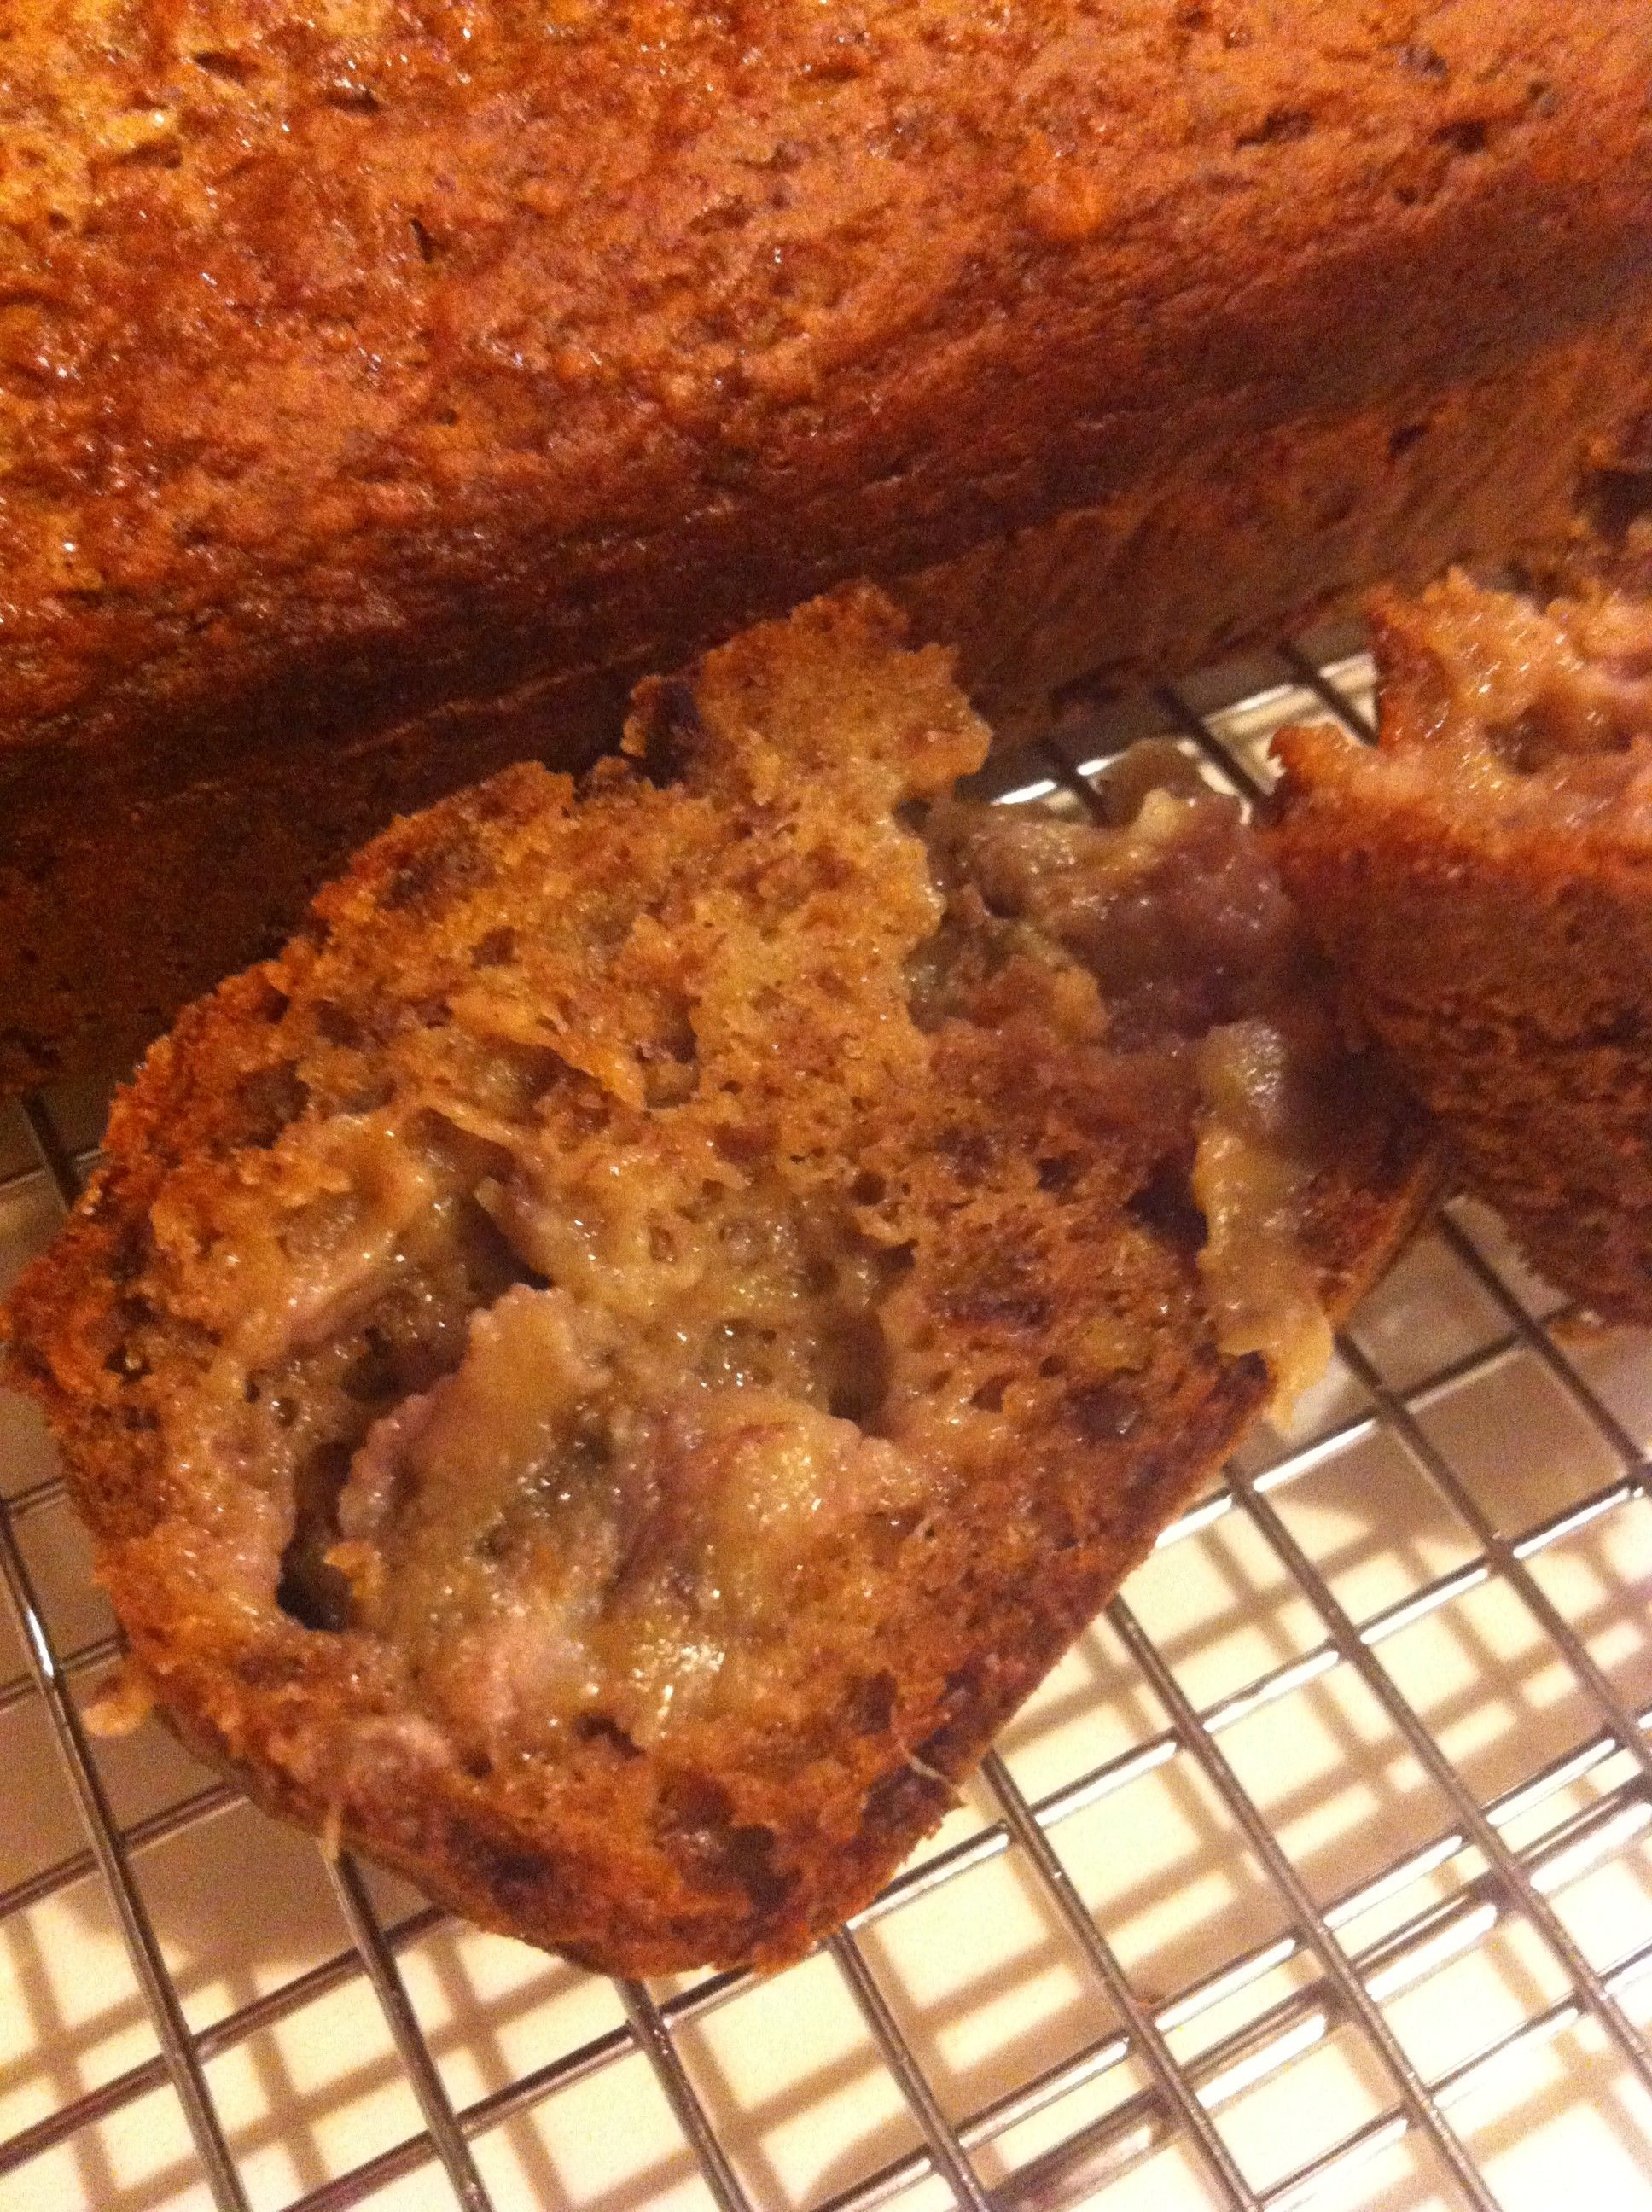 Thermomix Banana, Walnut & Date Loaf Thermomix recipes